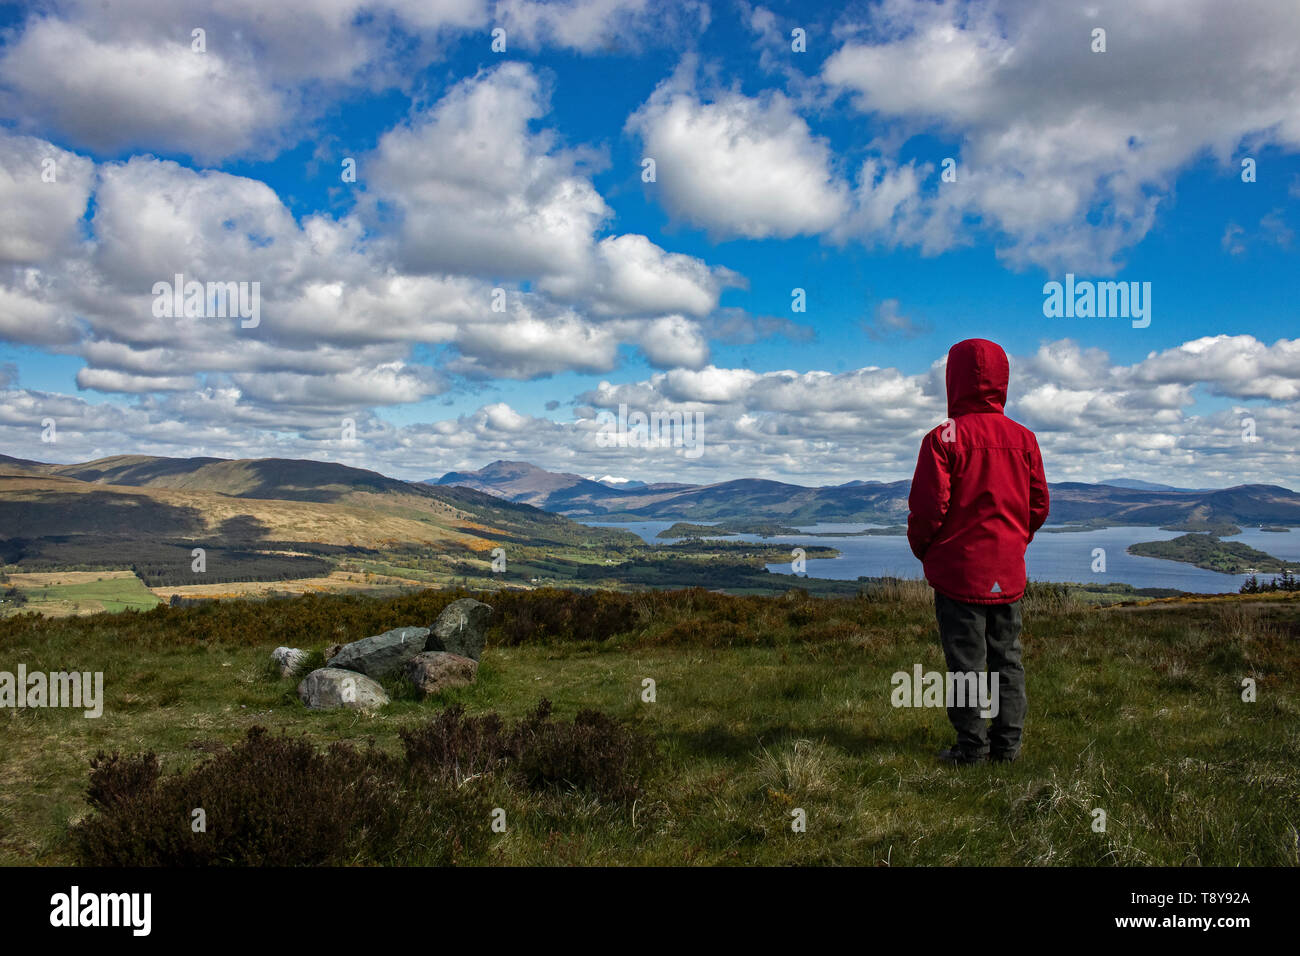 Standing on the Little hill dreaming of the Big Hill - Stock Image